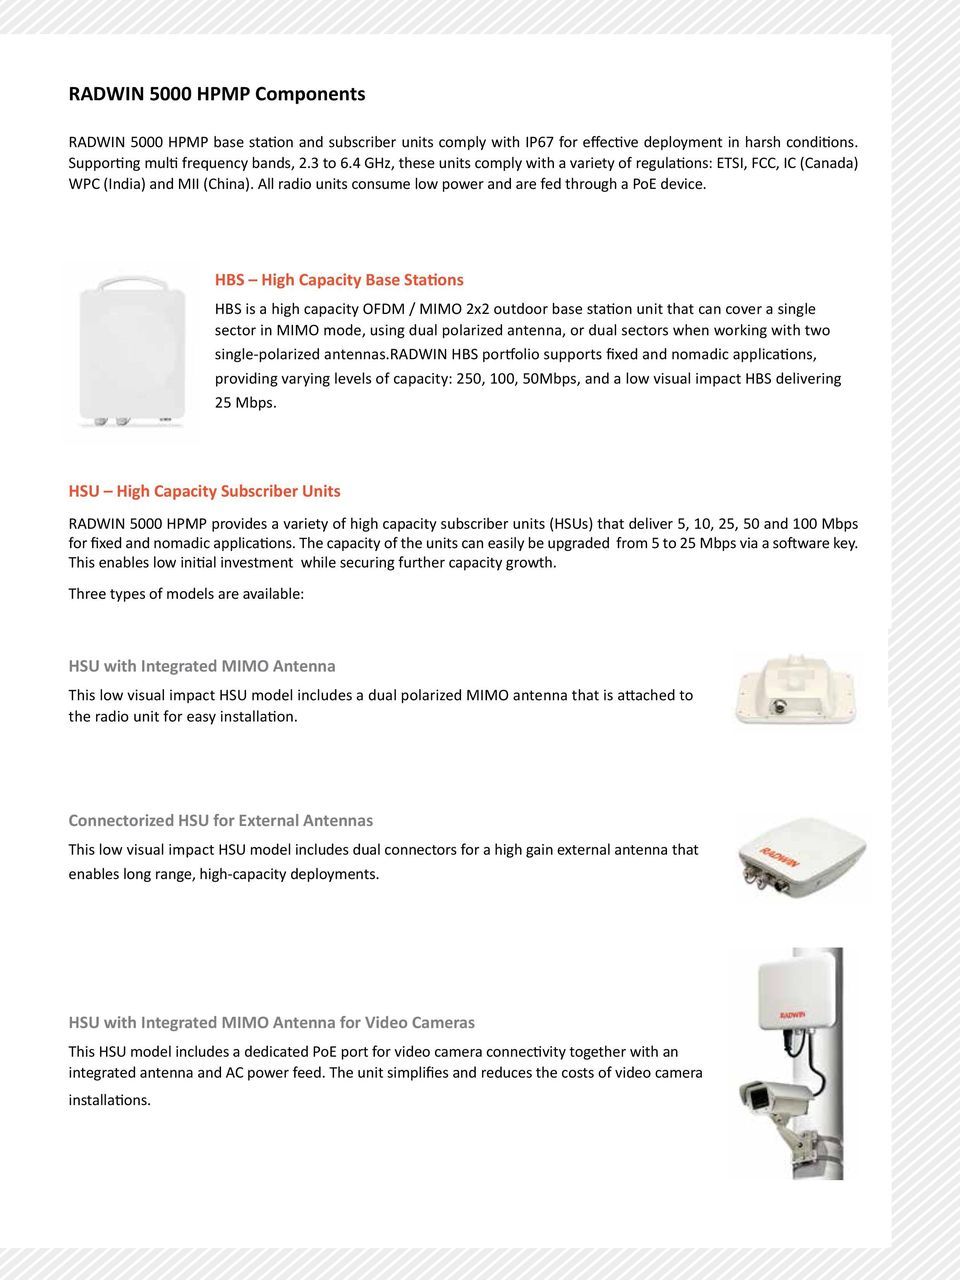 HBS High Capacity Base Stations HBS is a high capacity OFDM / MIMO 2x2 outdoor base station unit that can cover a single sector in MIMO mode, using dual polarized antenna, or dual sectors when